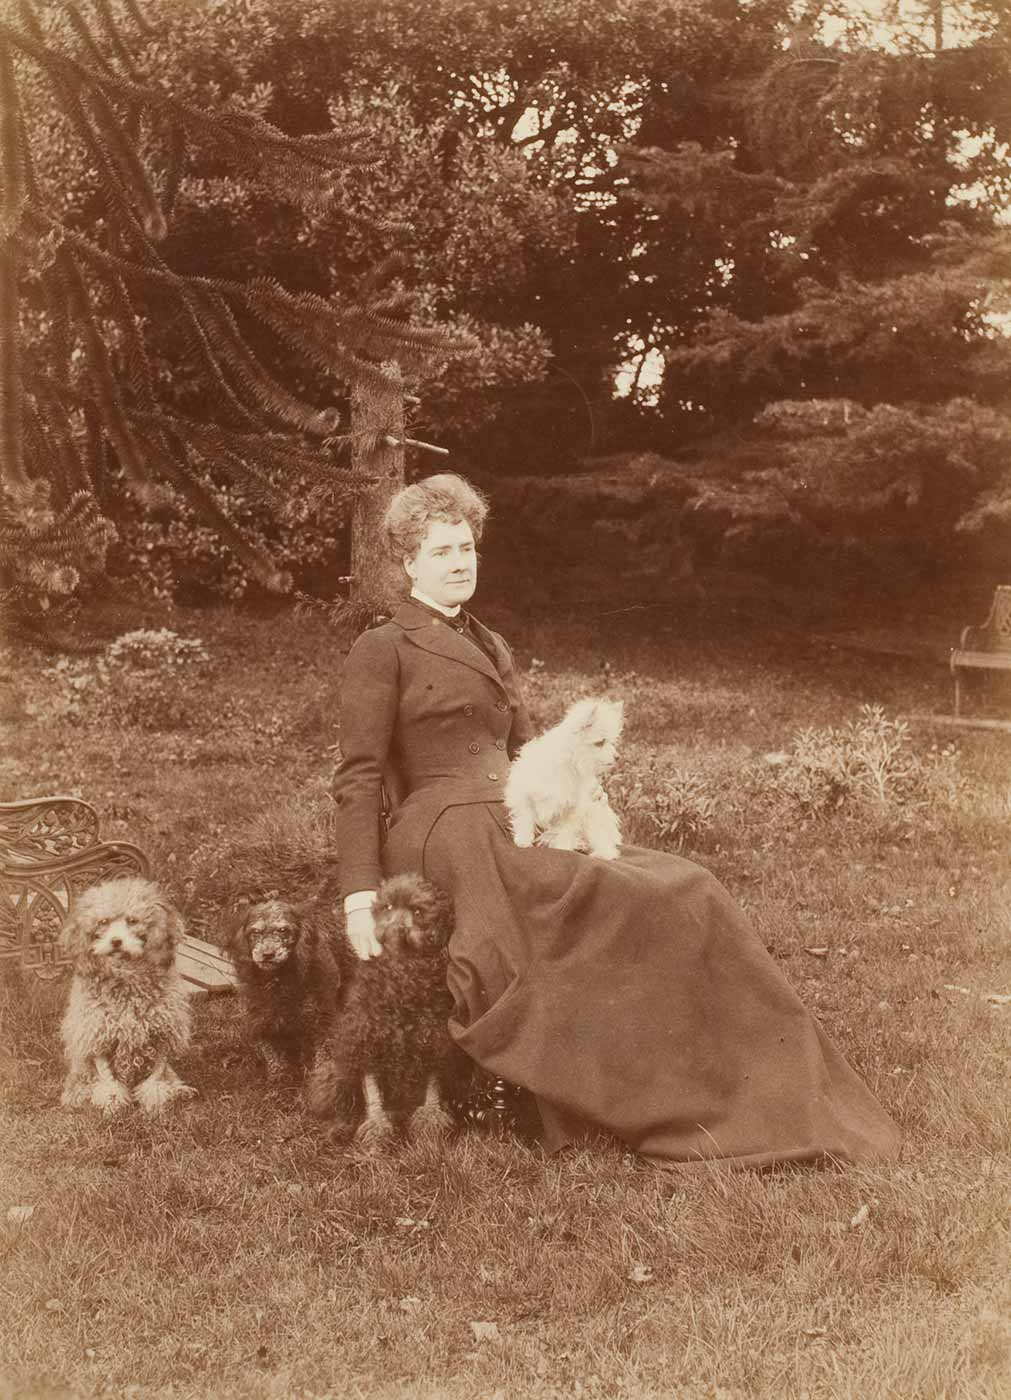 A woman and four dogs in a garden. - click to view larger image